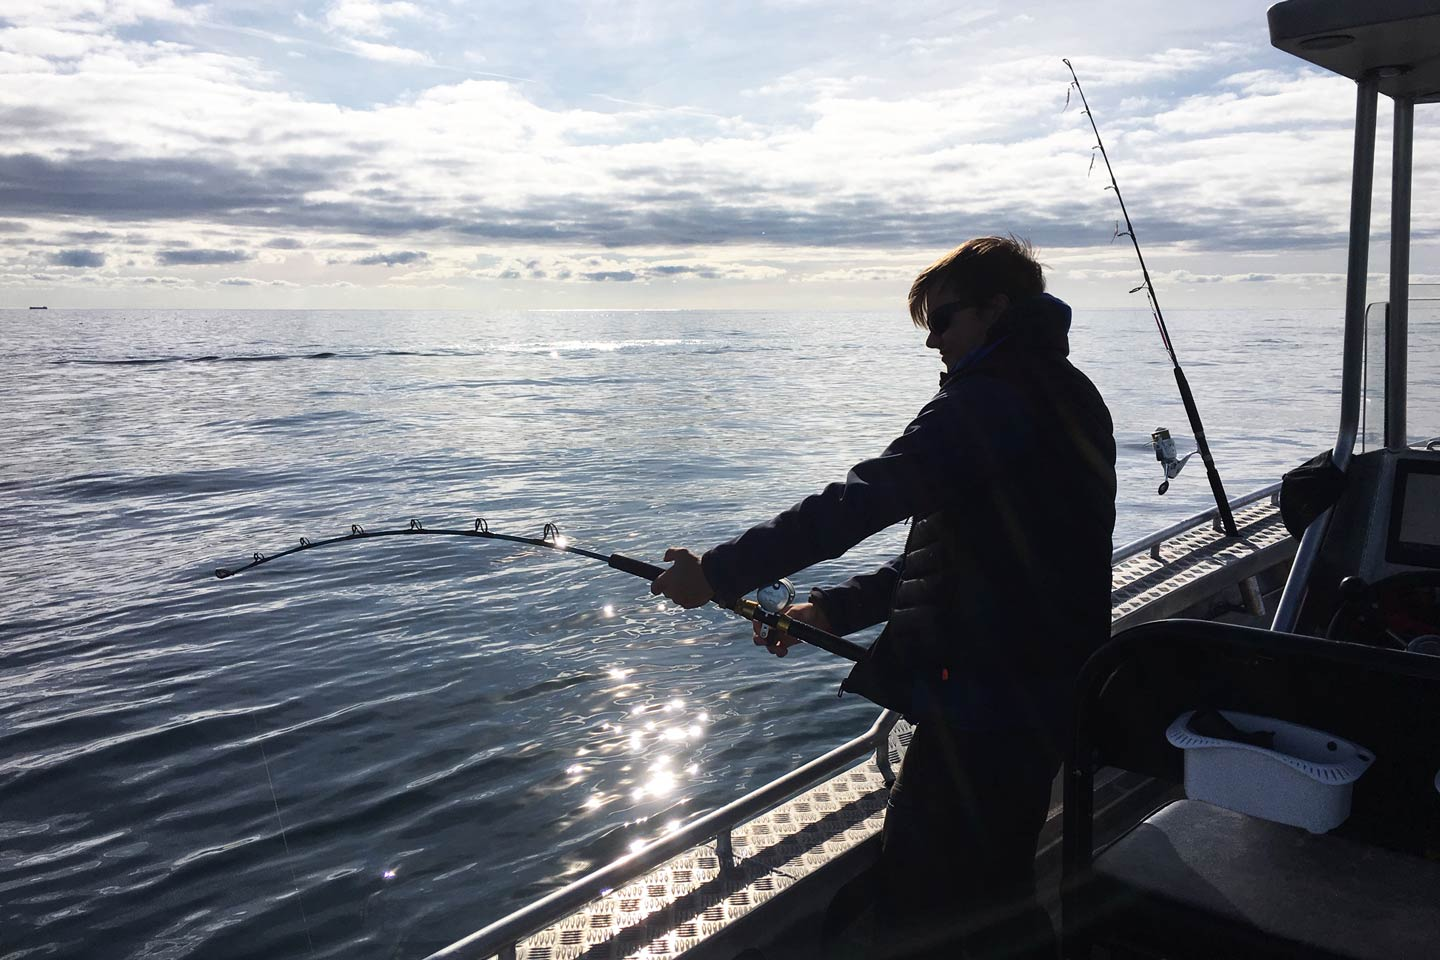 A male angler doing battle with a Sea Trout by jigging in Baltic Sea.